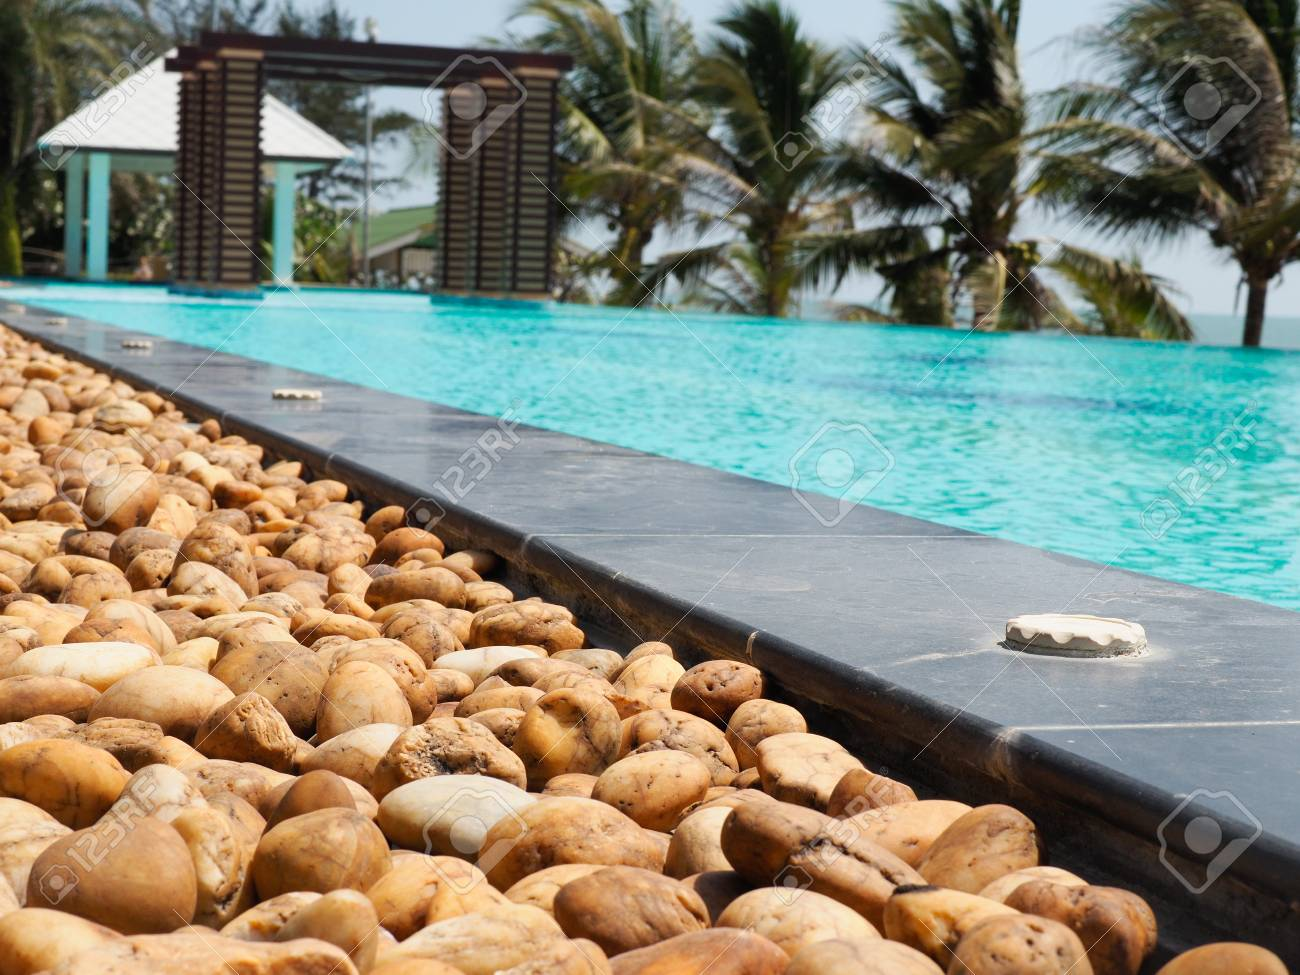 swimming pool with rocks and palm